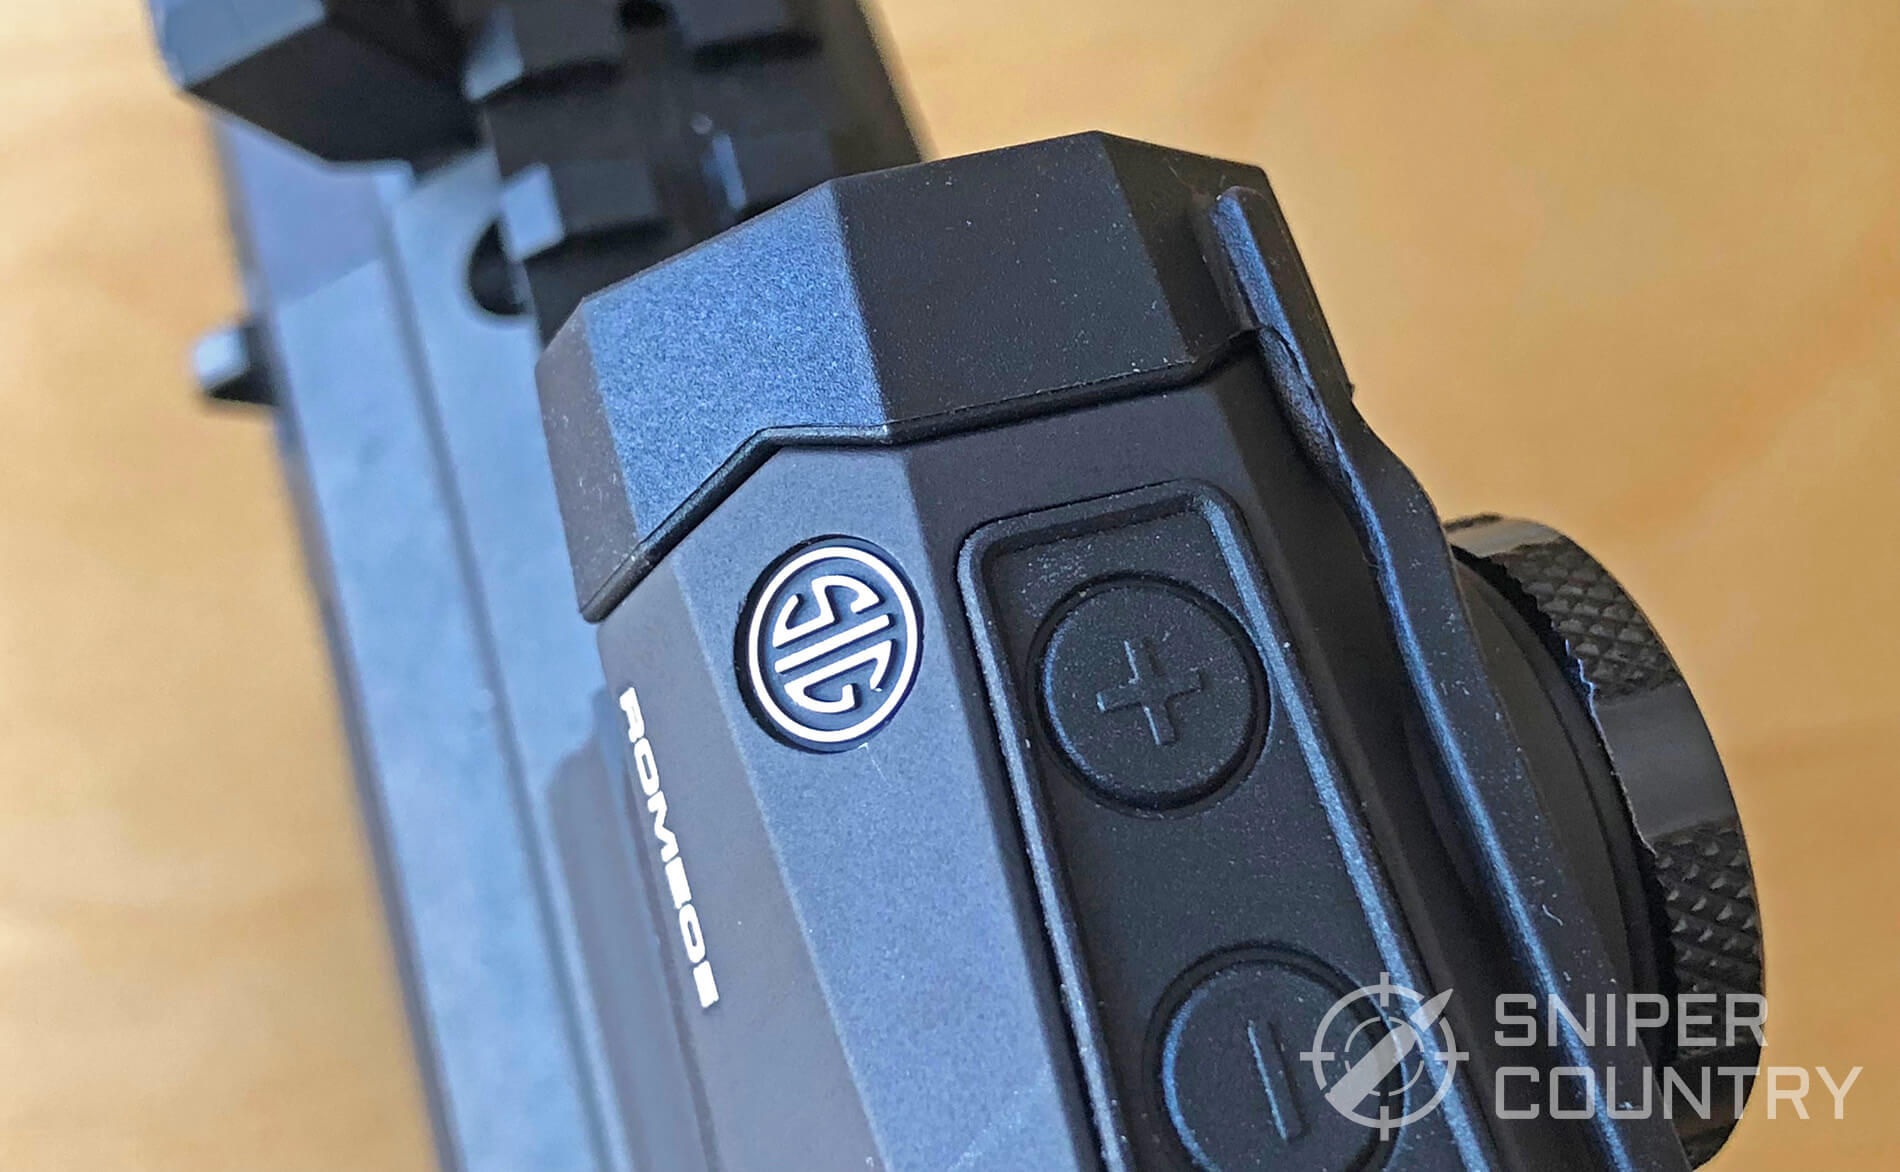 Sig Sauer Romeo 5 close-up on buttons